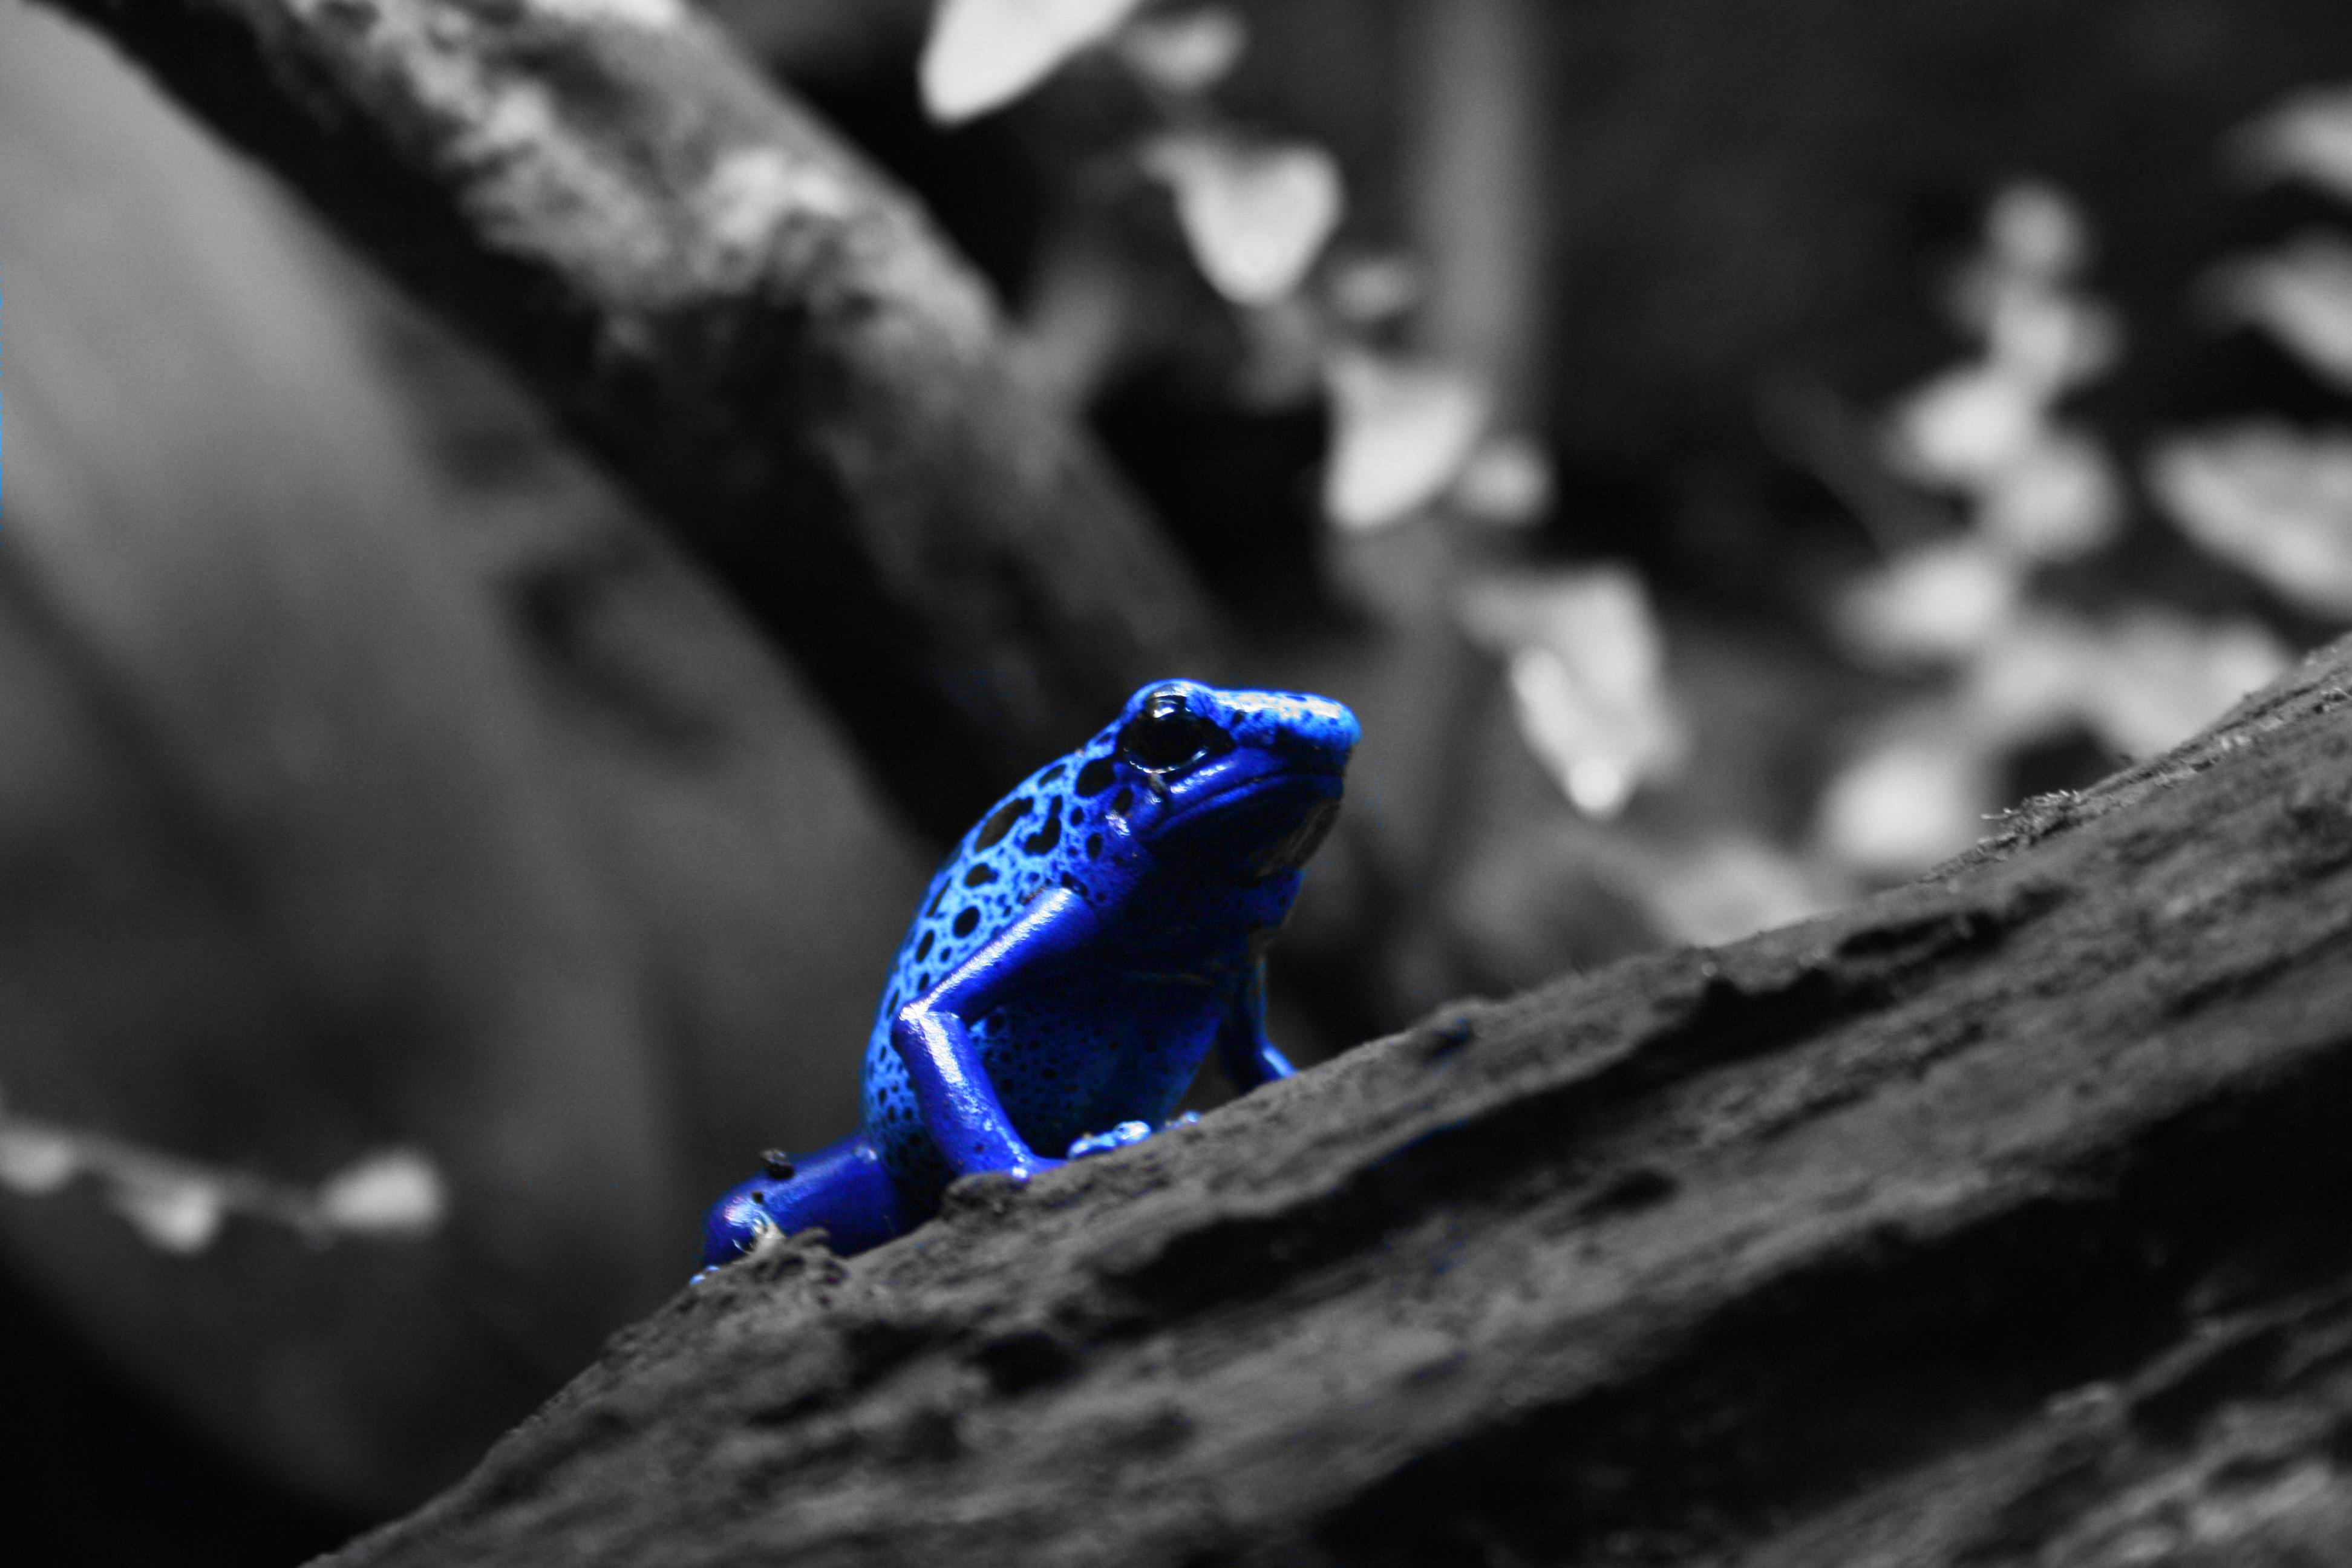 3 Blue Poison Dart Frog HD Wallpapers | Backgrounds ...